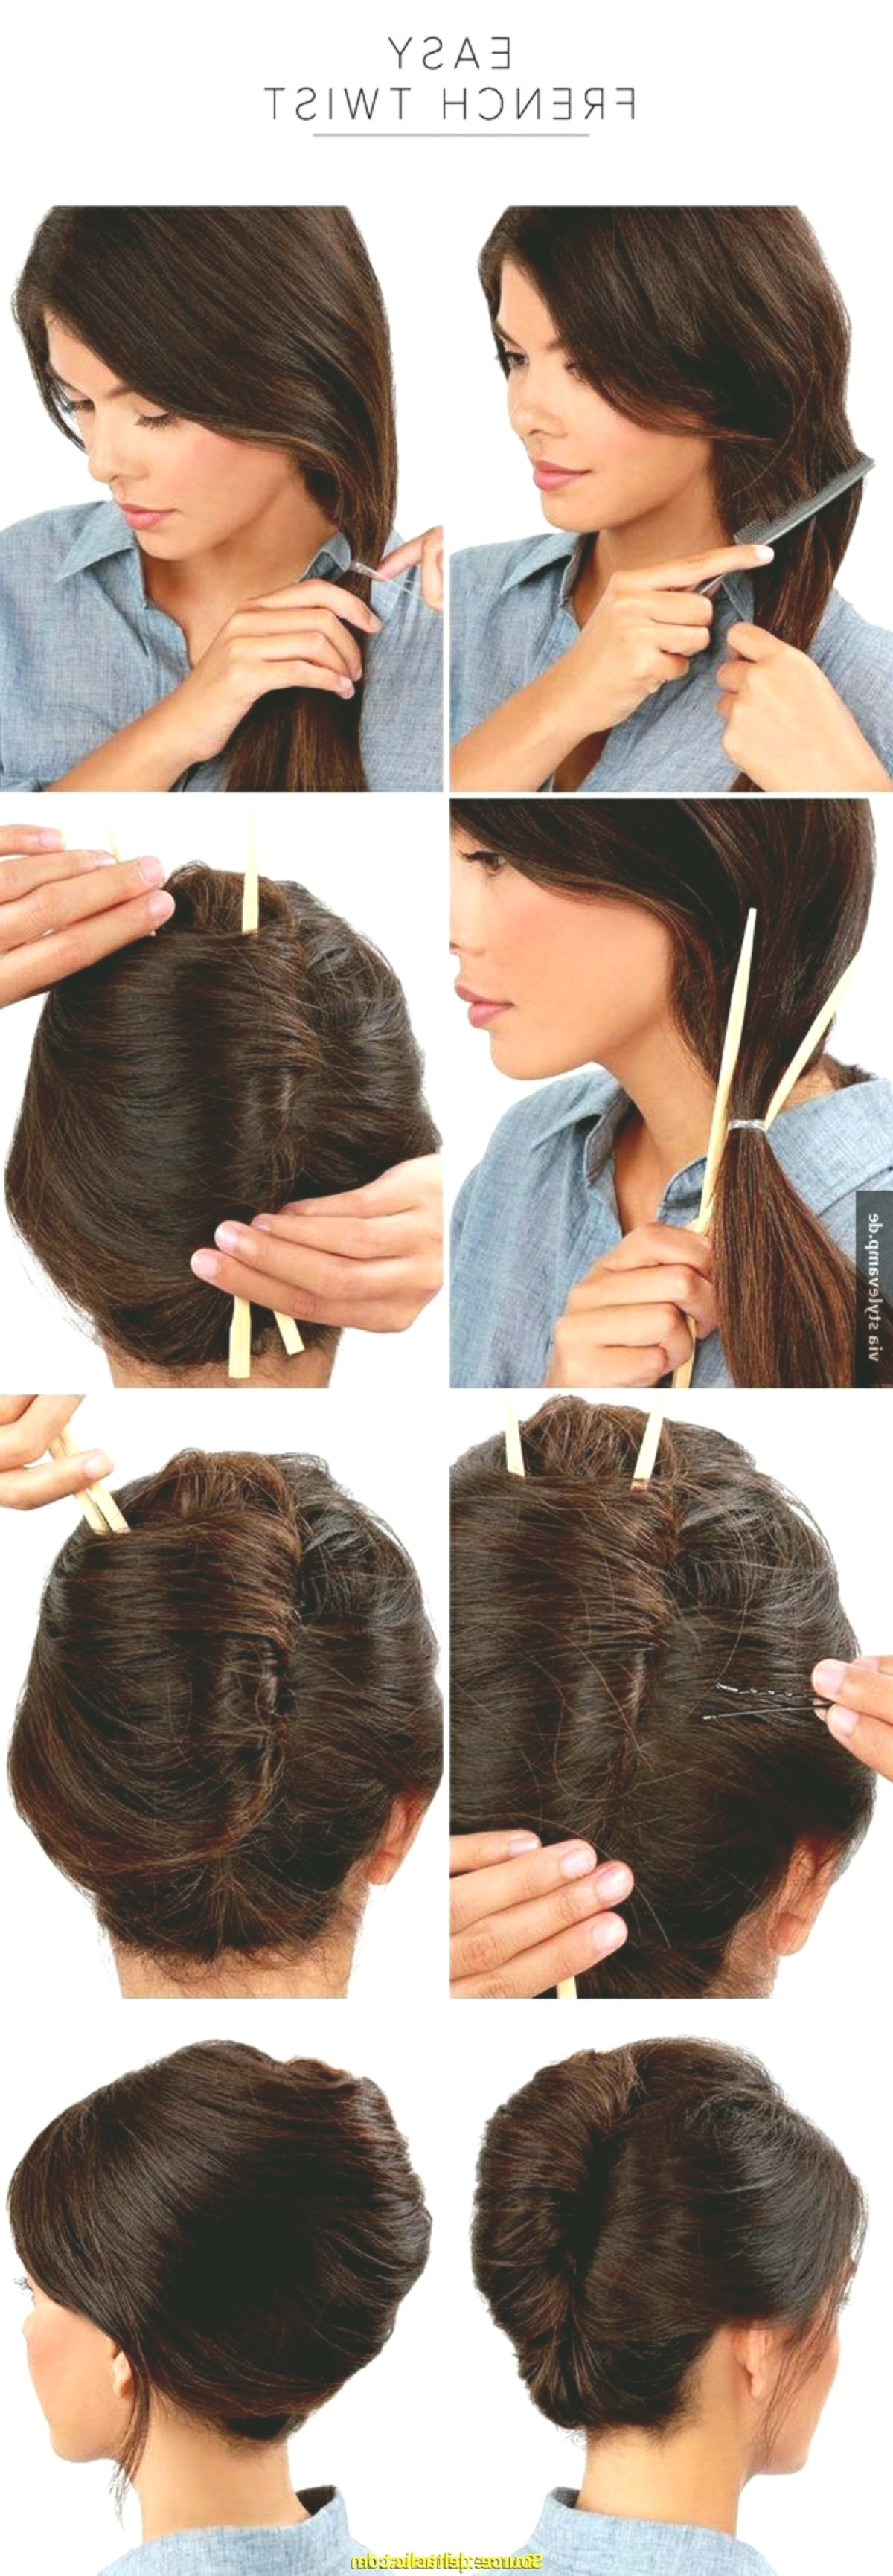 Fancy Simple Hairstyling Guide Concept - Excellent Simple Hairstyles Guide Models